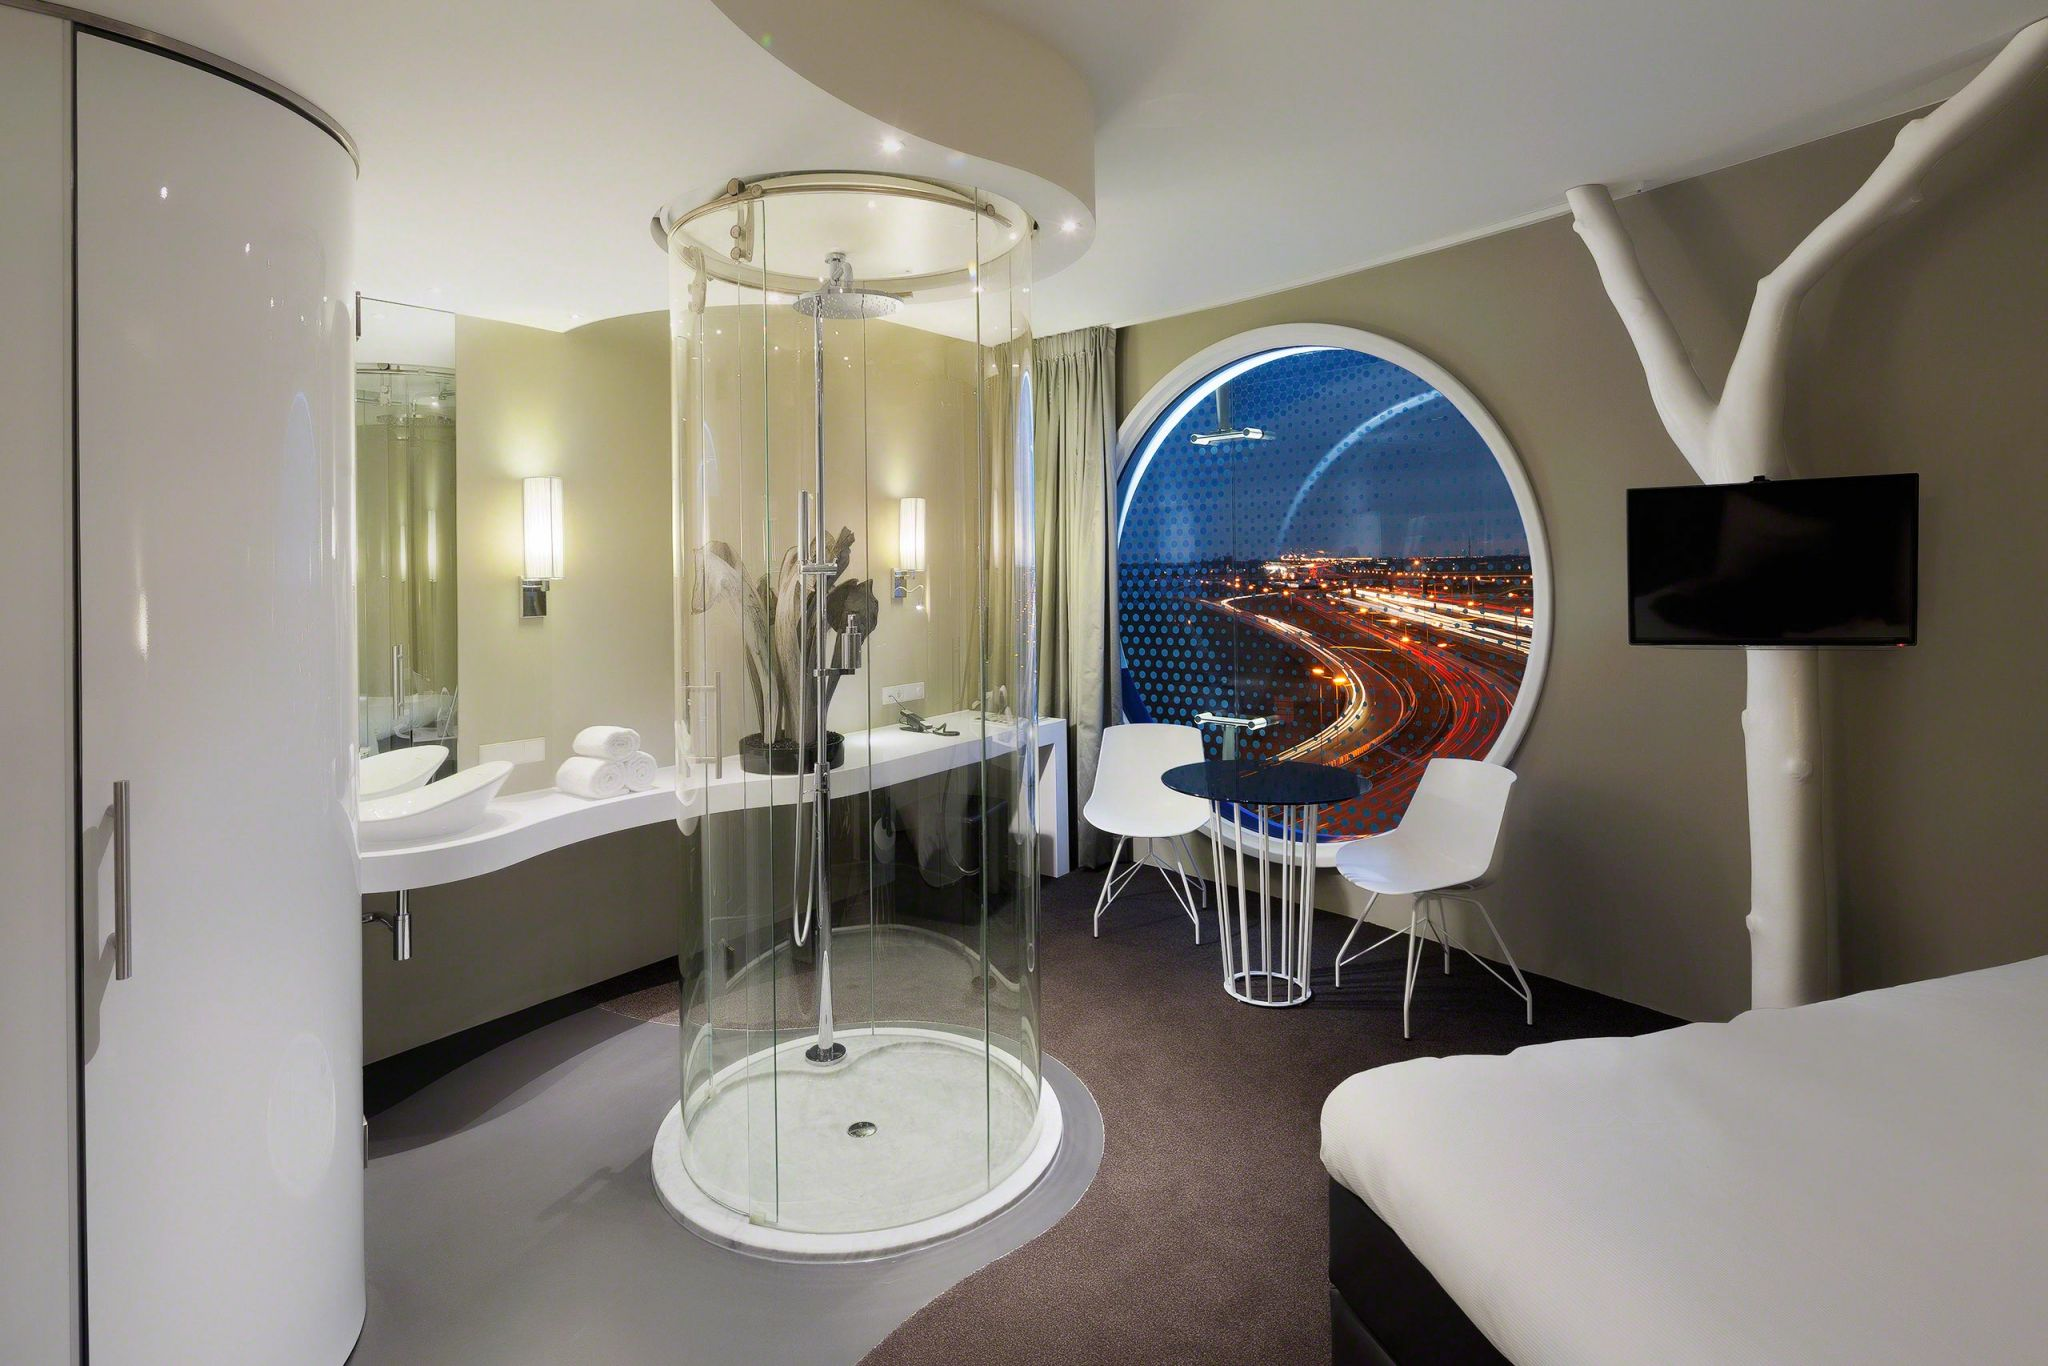 Interior designer Robert Kolenik's hotel room design is inspired by the design hotel's round windows.